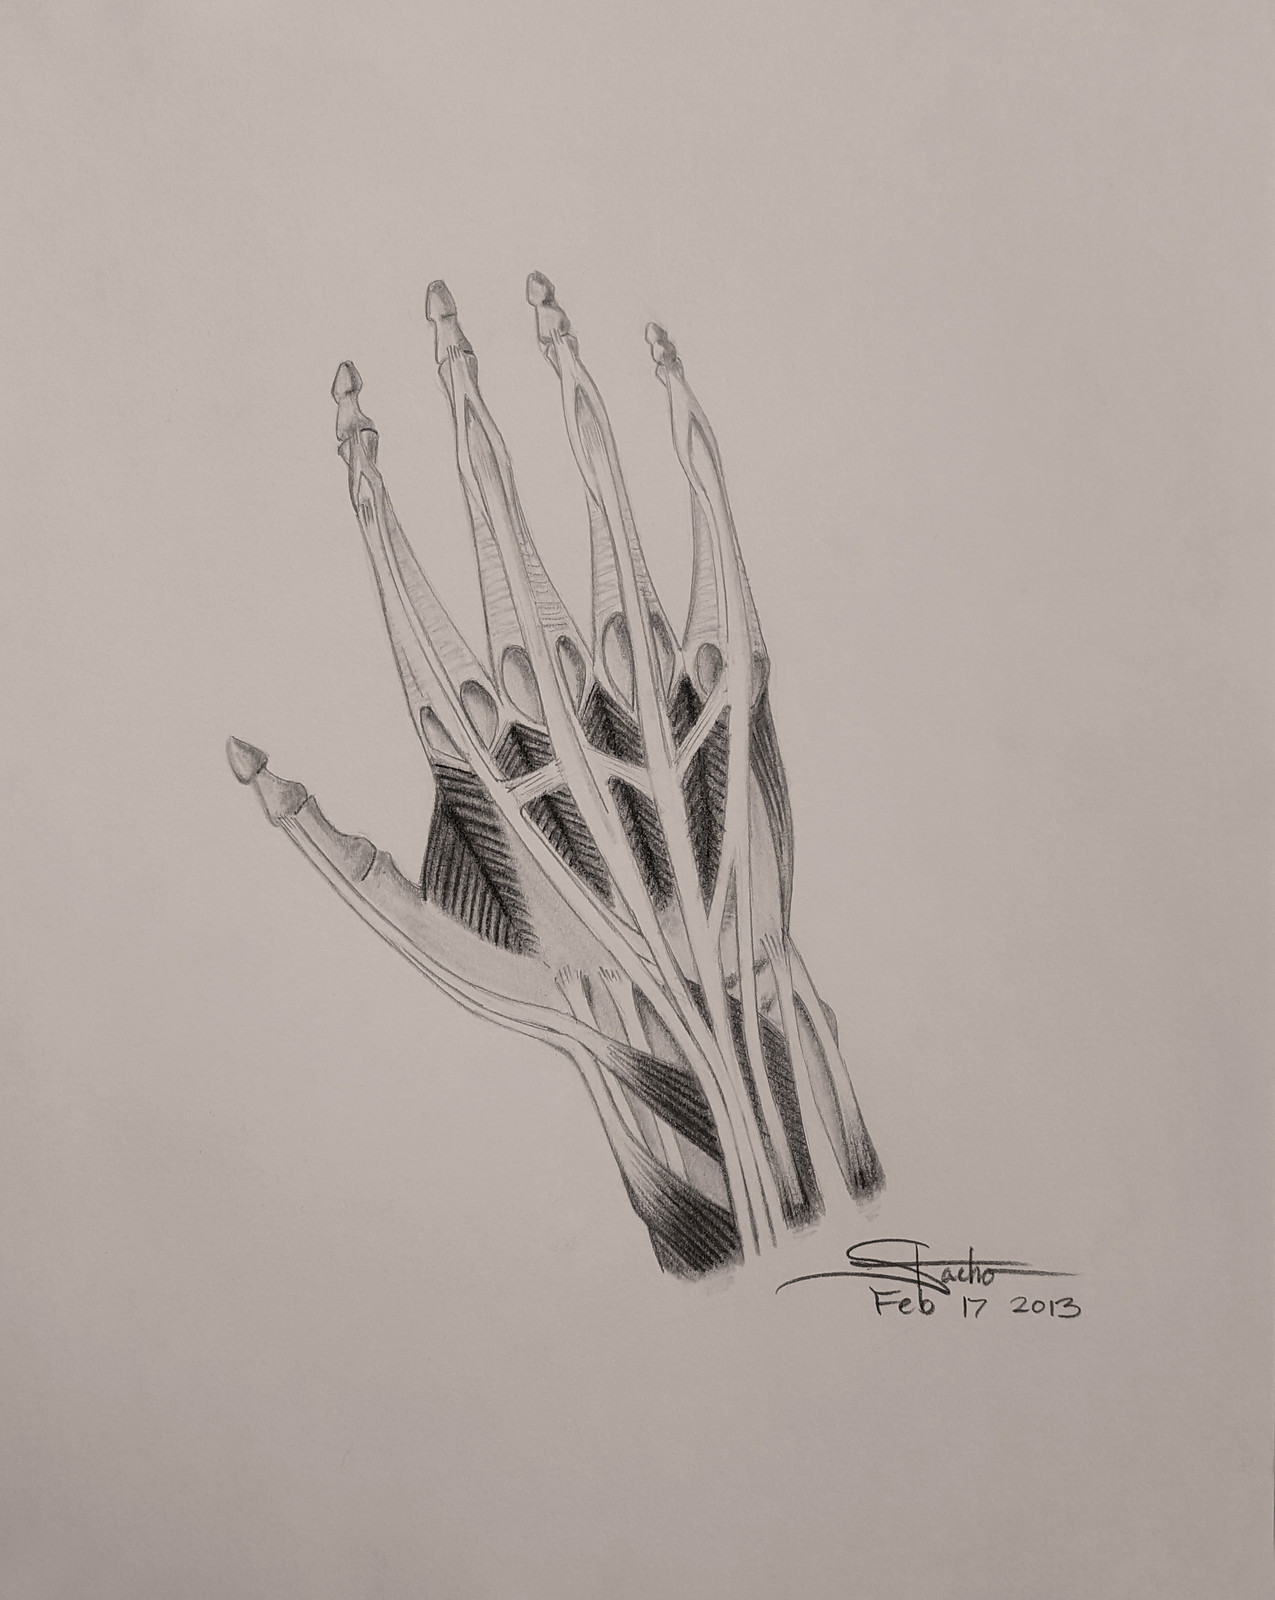 Structure of the Hand